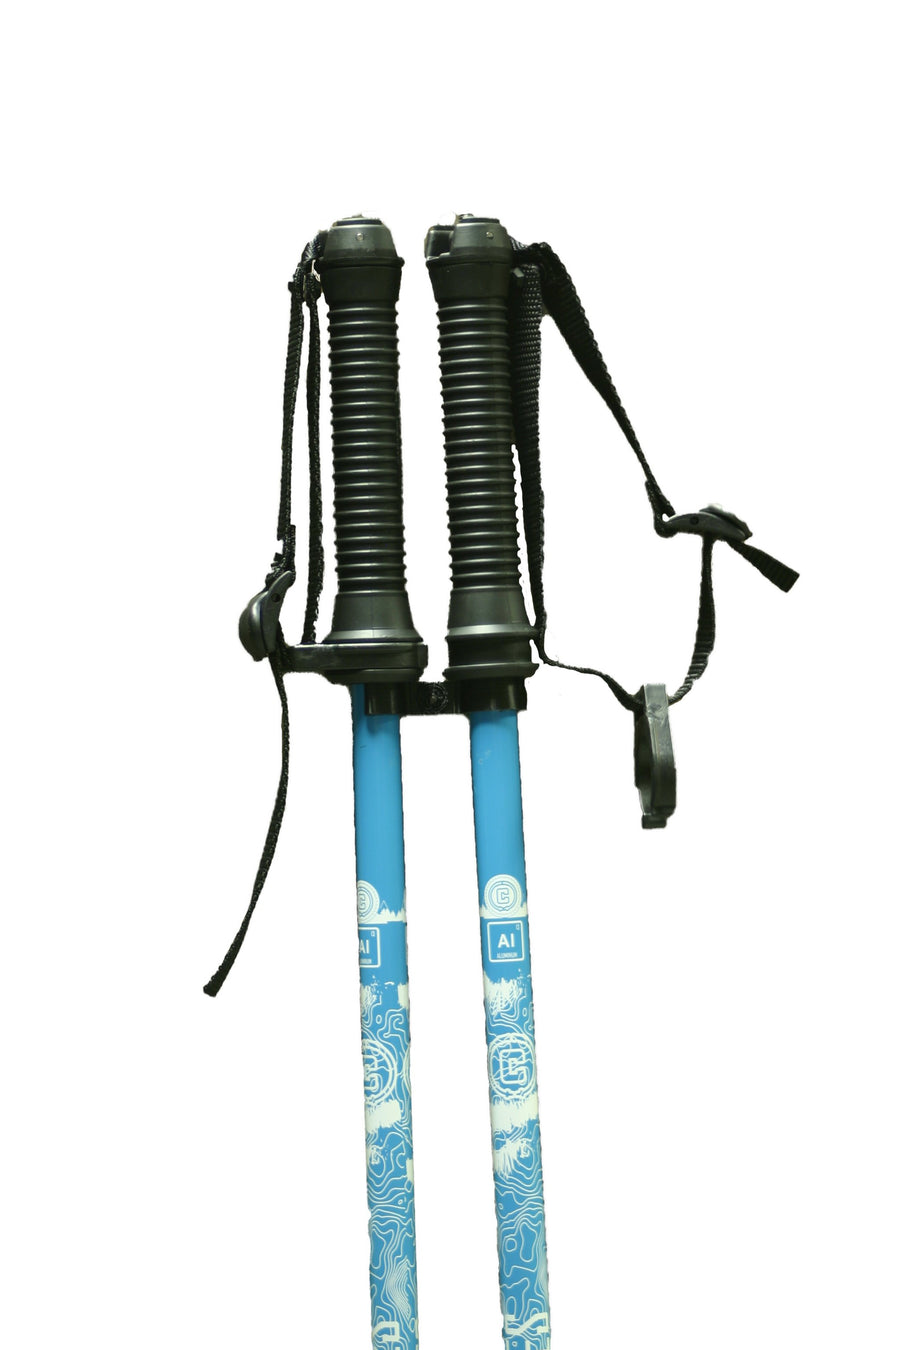 TRAJECTORY Aluminum Ski Pole - Blue